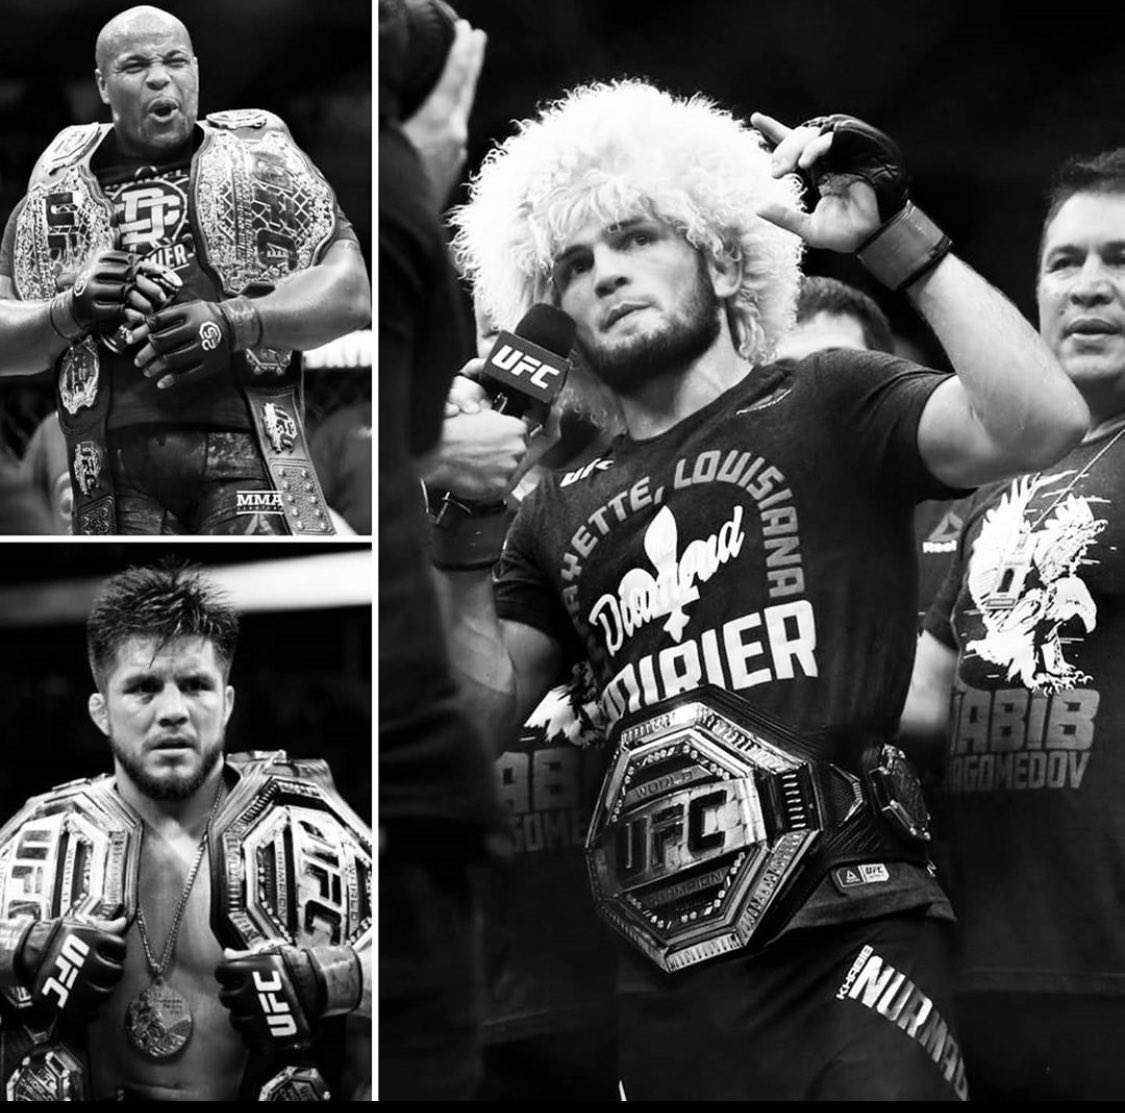 Congrats on your amazing career @khabib_nurmagomedov you will truly be missed. I know your dad is proud of the amazing son he has raised. This year has been a year of the greatest combat Sports athletes of all time retiring in front of the world. #wrestlingislife 🏆🏆🏆 https://t.co/5BzCLc3iOG